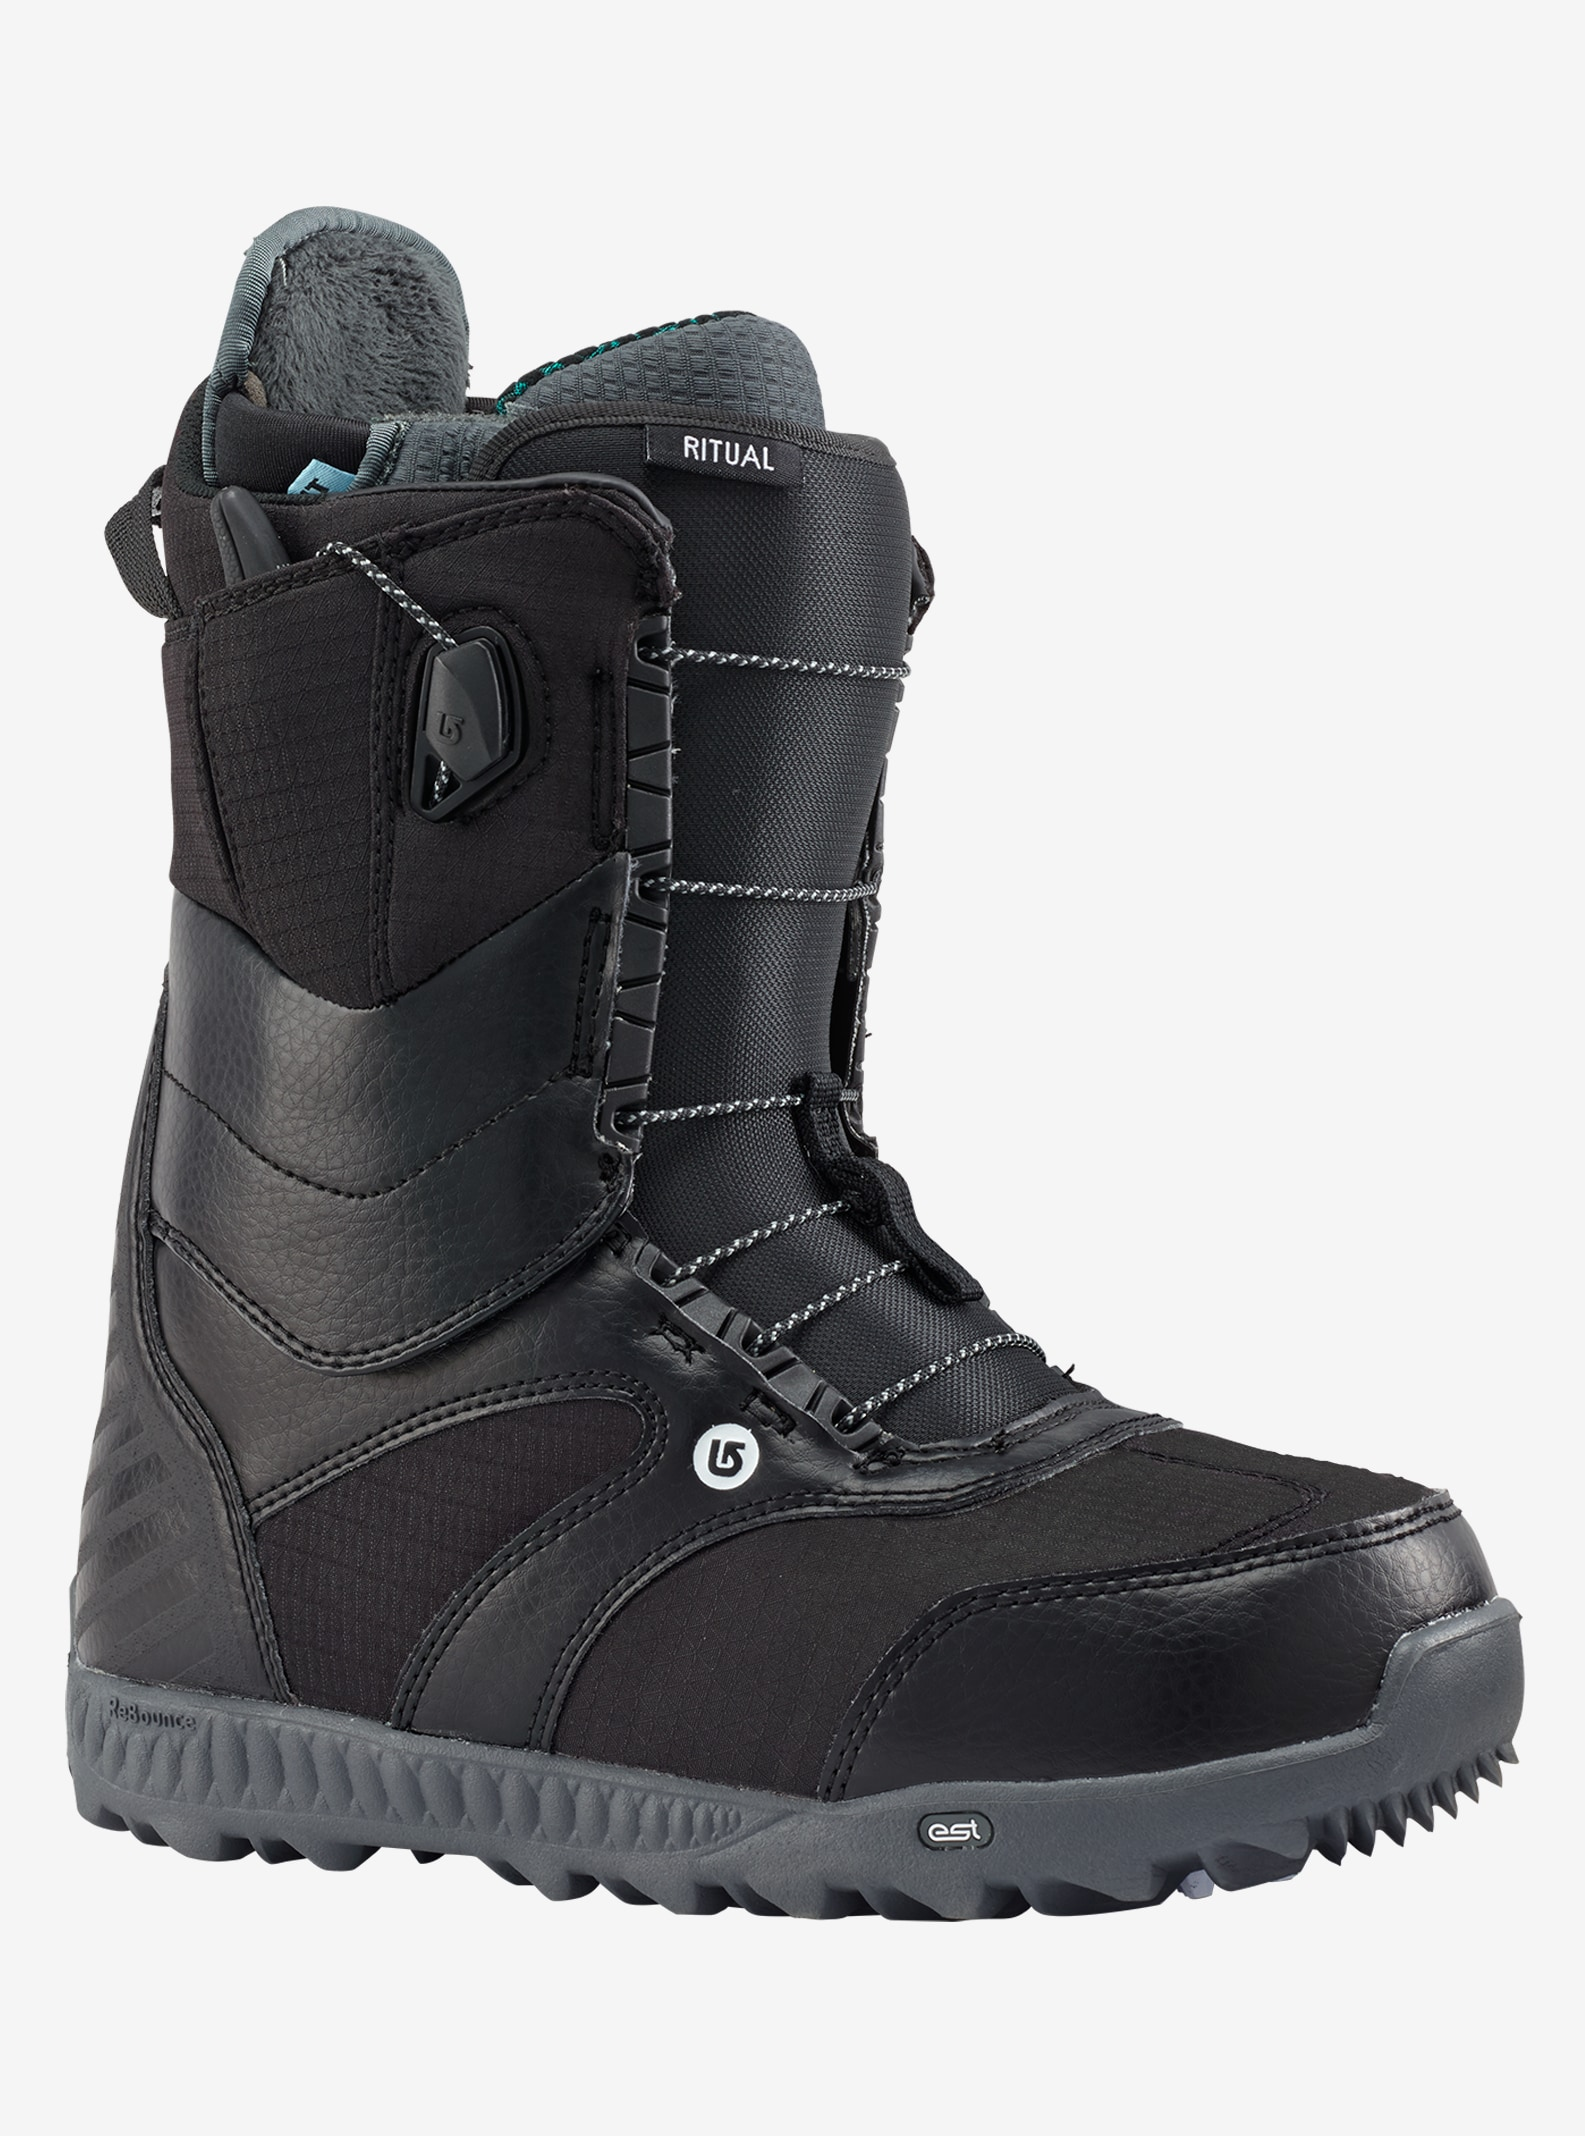 Women's Burton Ritual Snowboard Boot shown in Black